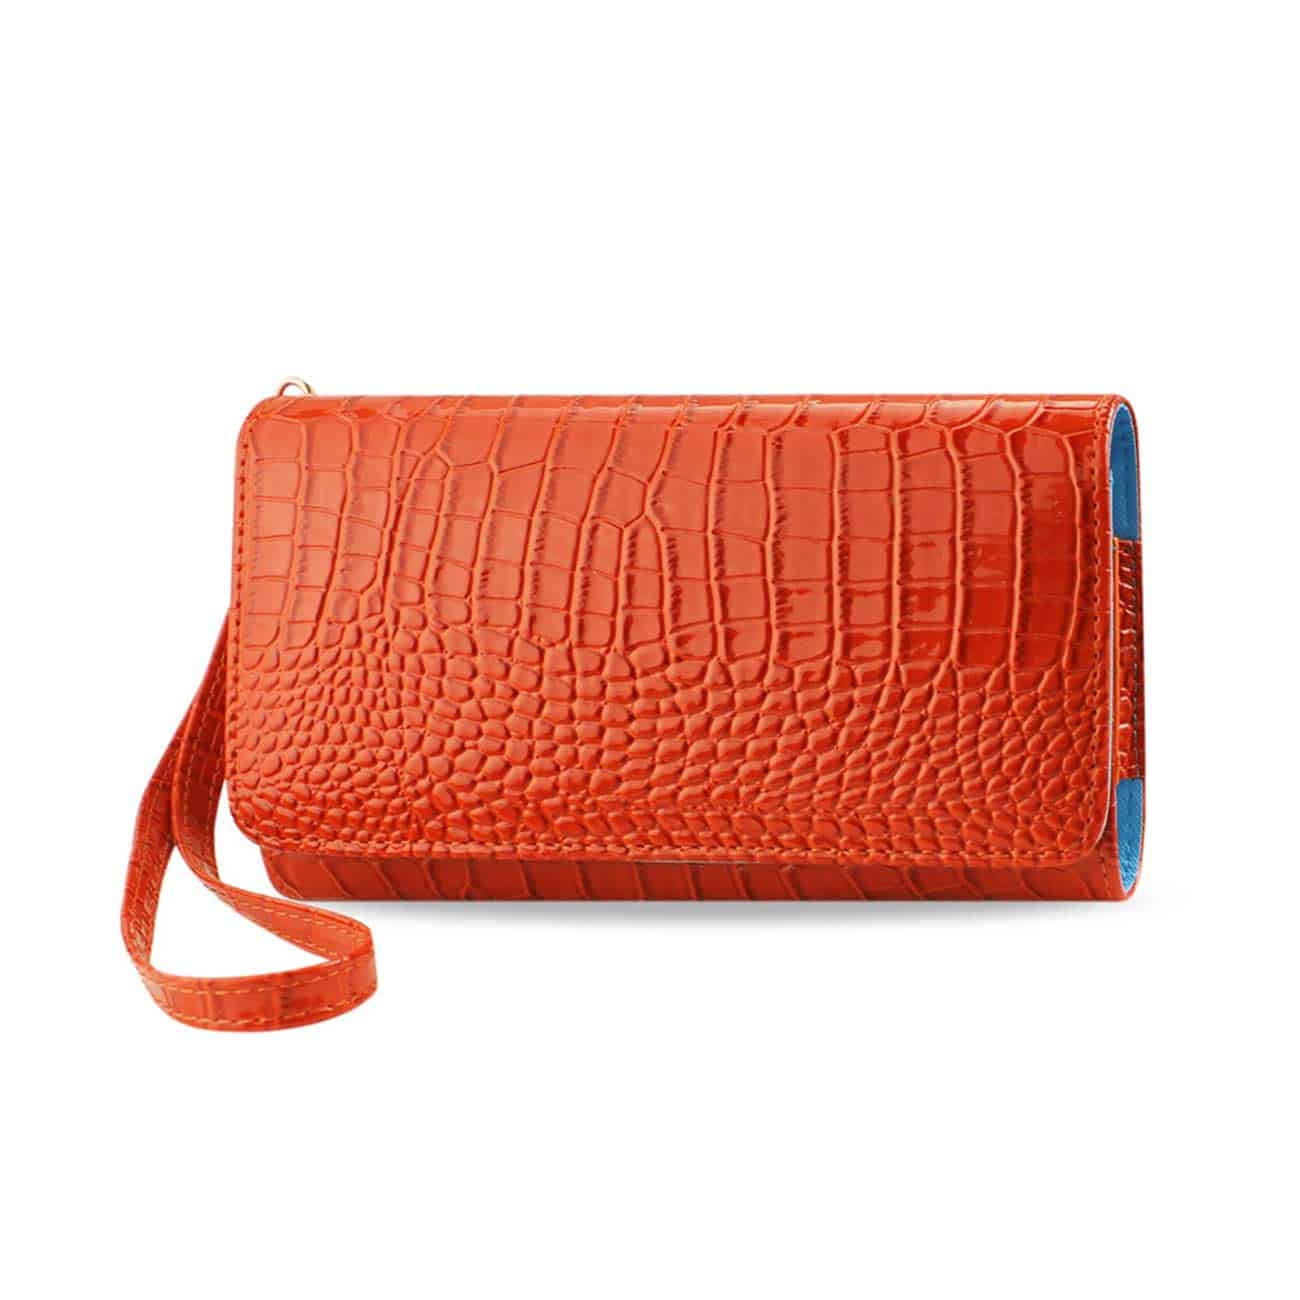 CROCODILE PATTERN PURSE WALLET CASE IN ORANGE